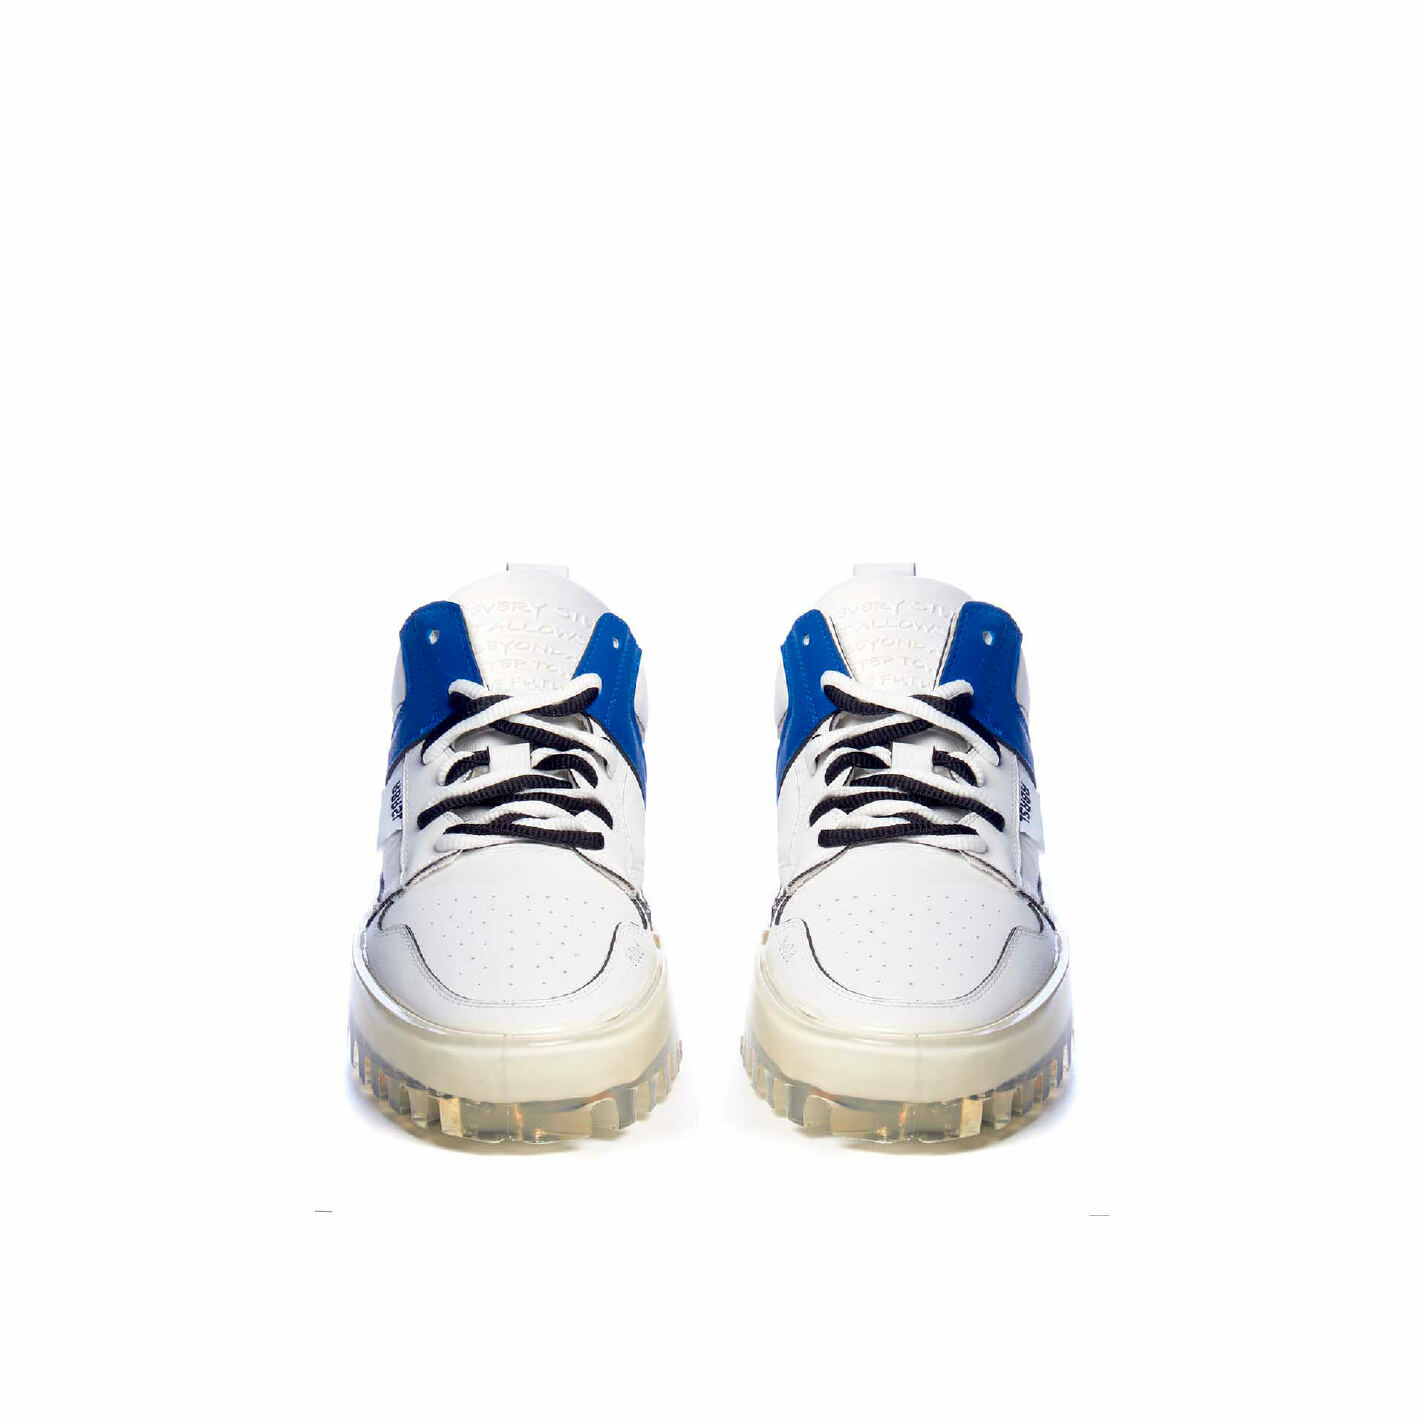 Men's BOLD low-top white leather trainers with blue detailing